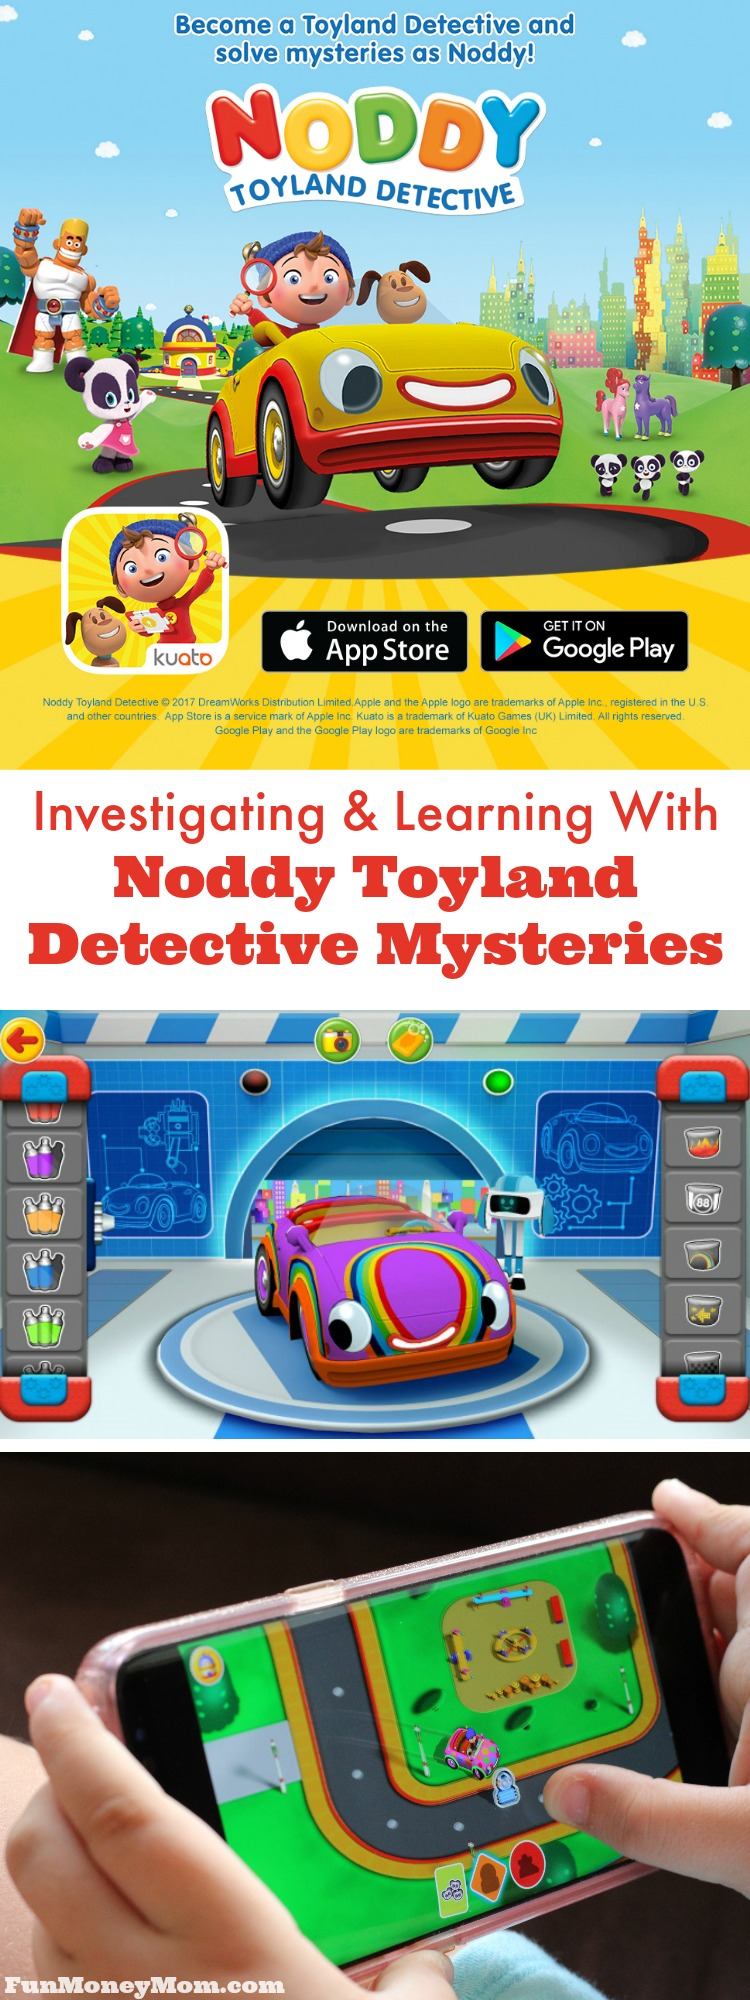 Looking for apps that will keep your child entertained, yet teach them something along the way? With the Noddy Toyland Detective app, your child will have fun solving mysteries while learning important literacy skills at the same time.